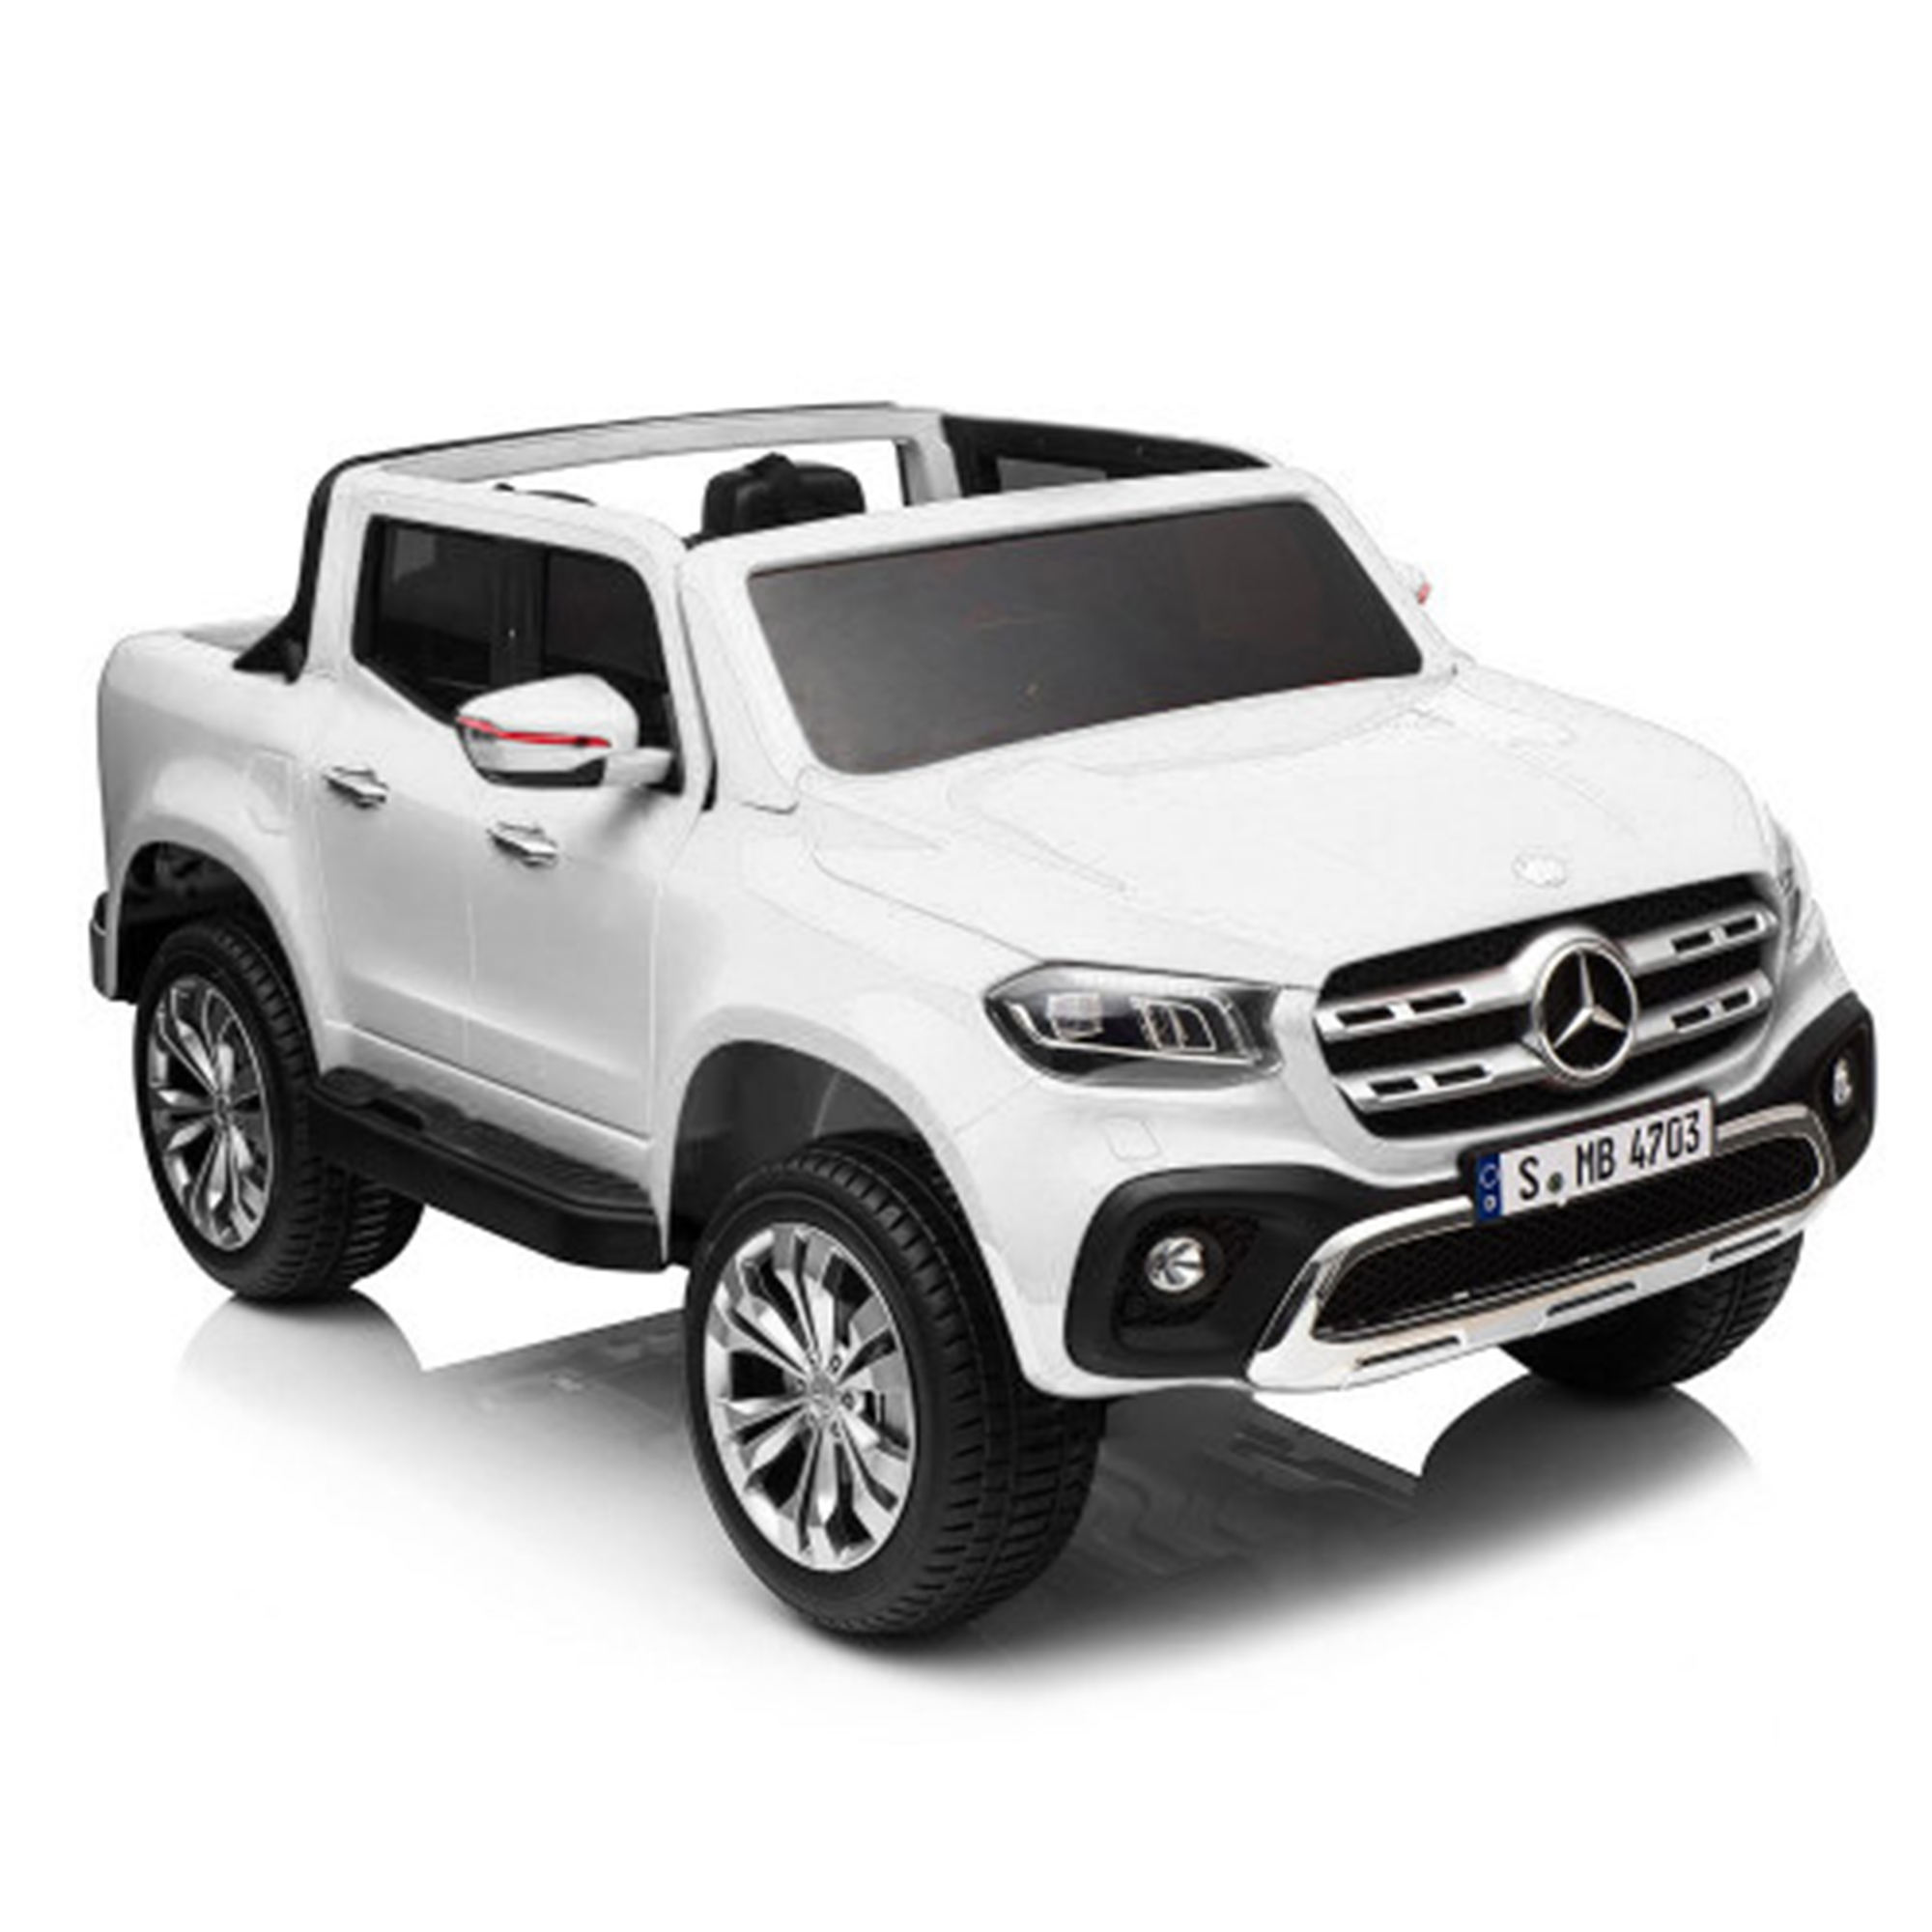 New Alison Licensed Mercedes-Benz X-class electric kids car with remote control